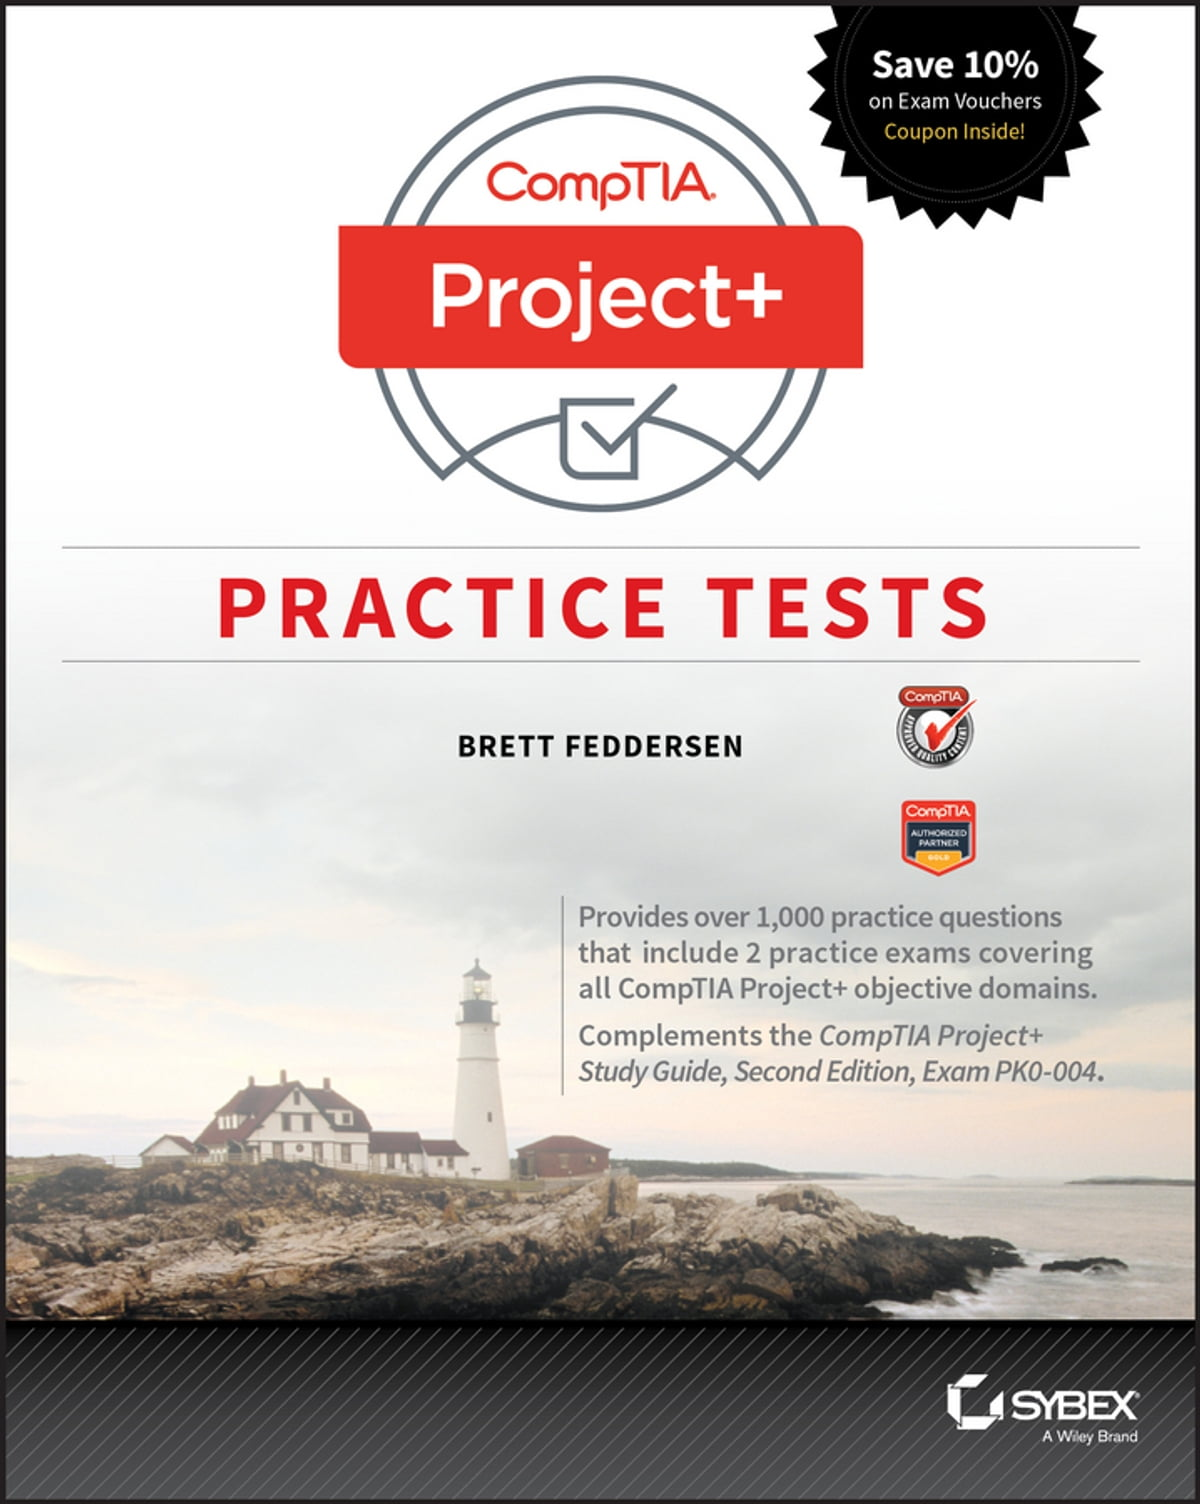 CompTIA Project+ Practice Tests eBook by Brett Feddersen - 9781119363378 |  Rakuten Kobo